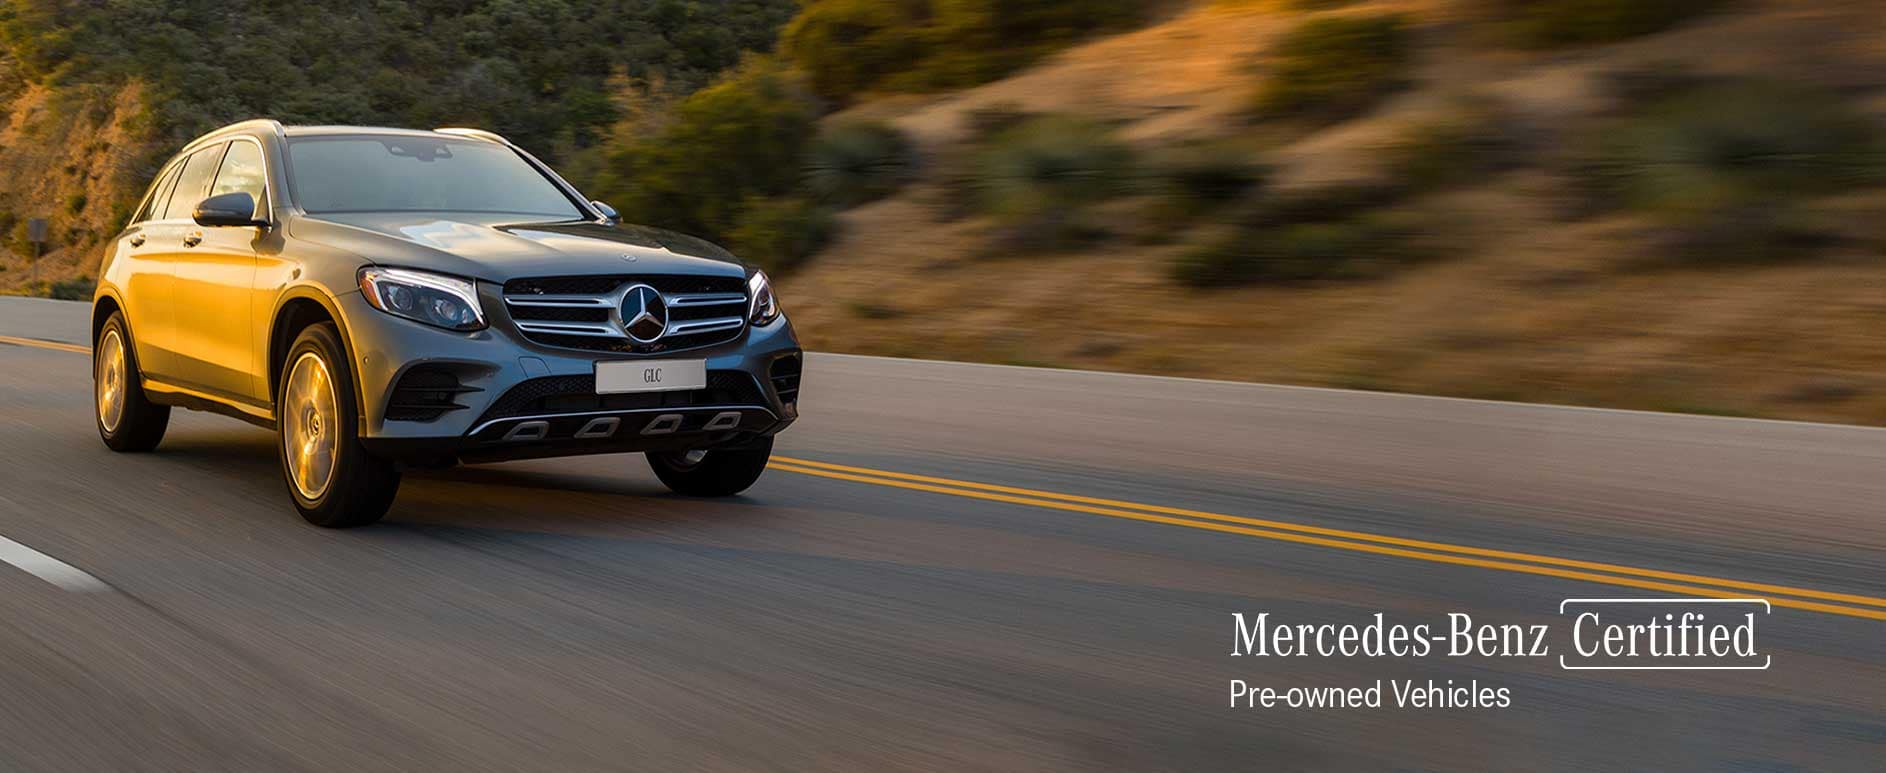 Mercedes-Benz Certified at Star